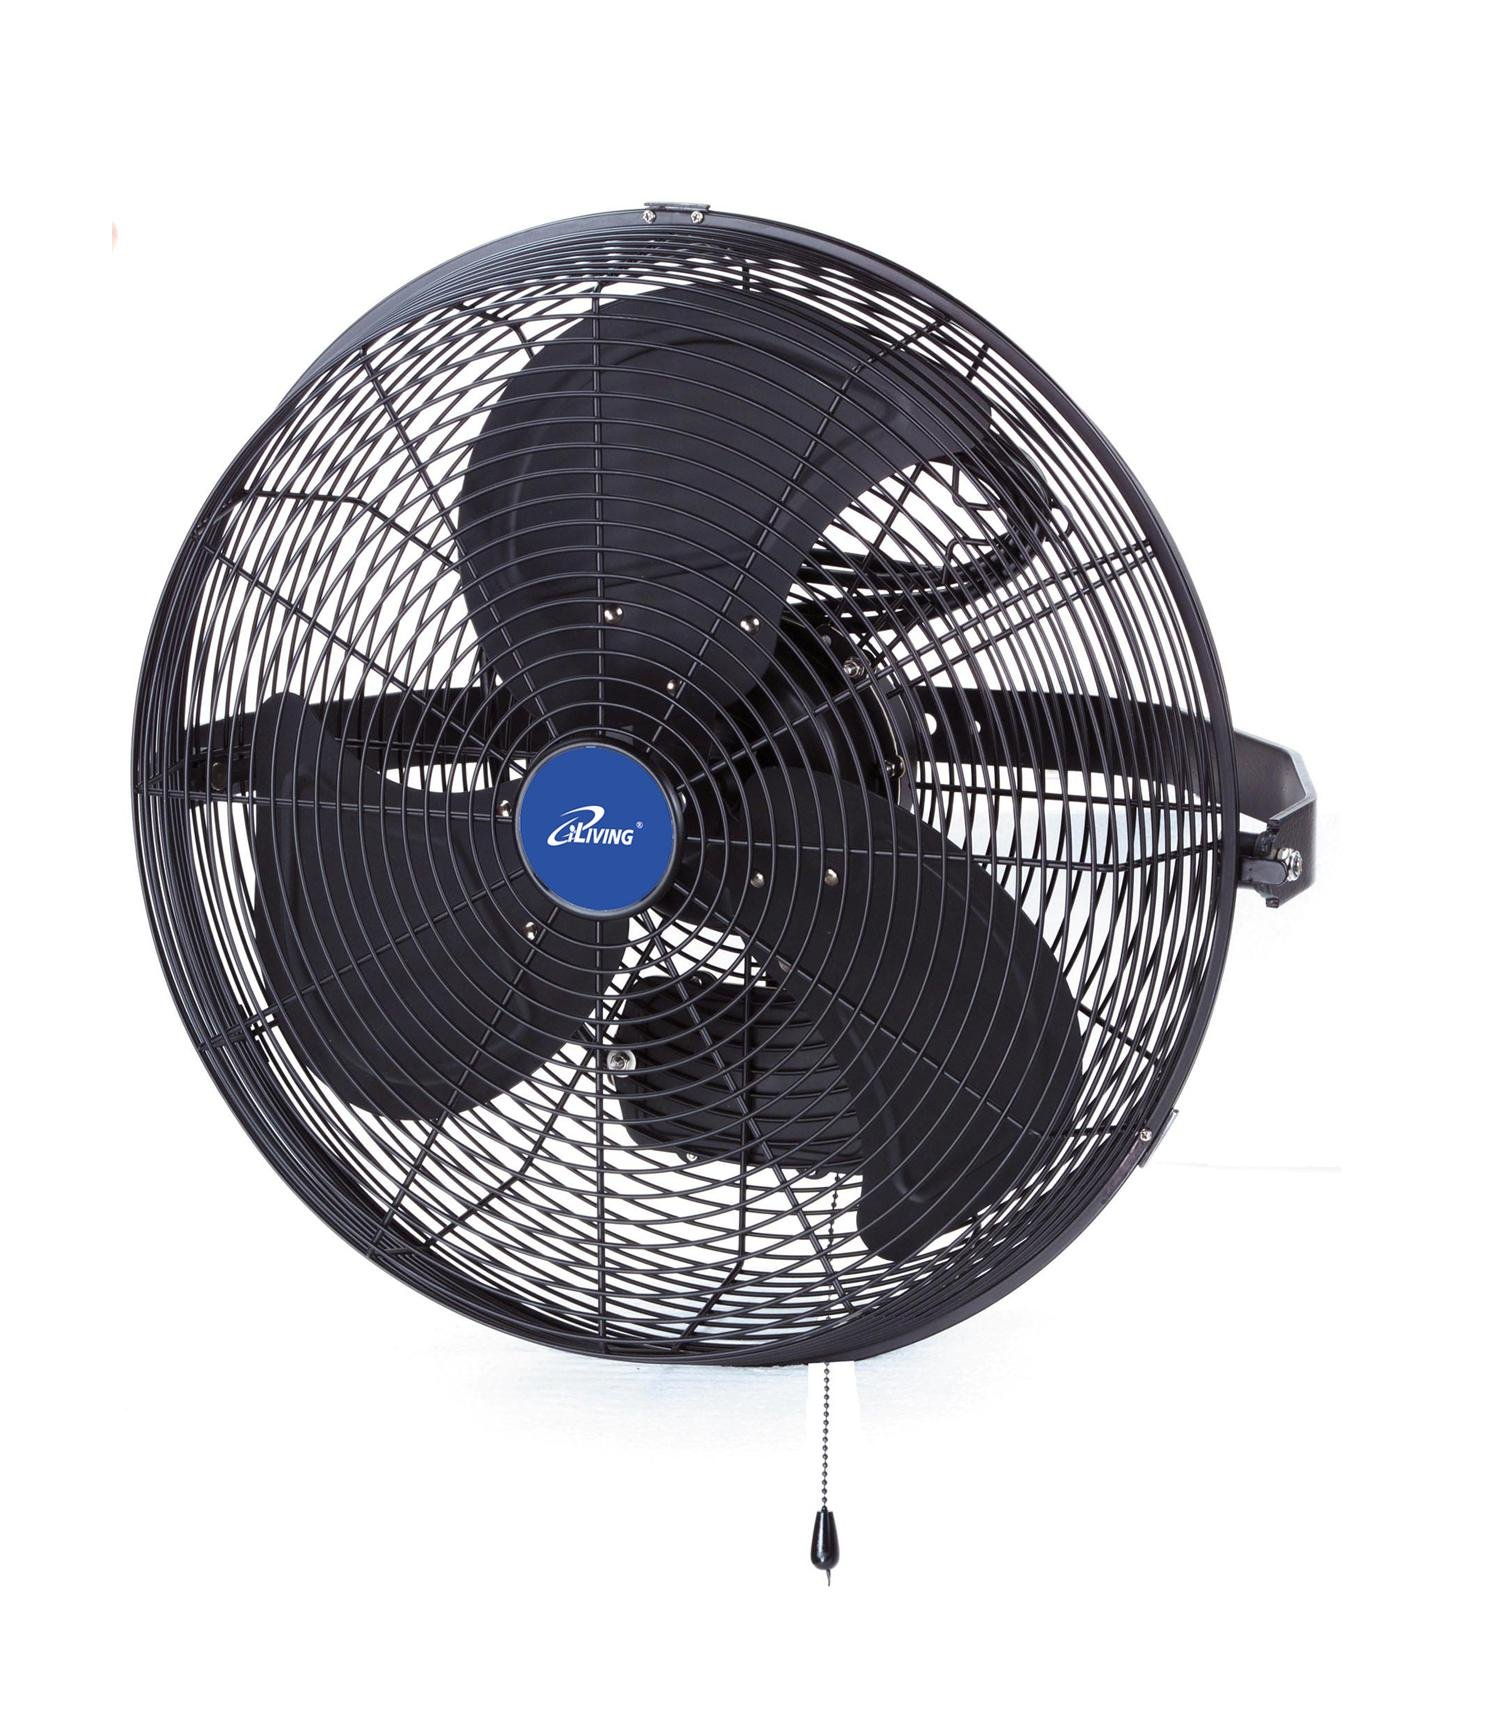 Iliving ILG8E14-15 Wall Mount Outdoor Waterproof Fan, 14'', Black